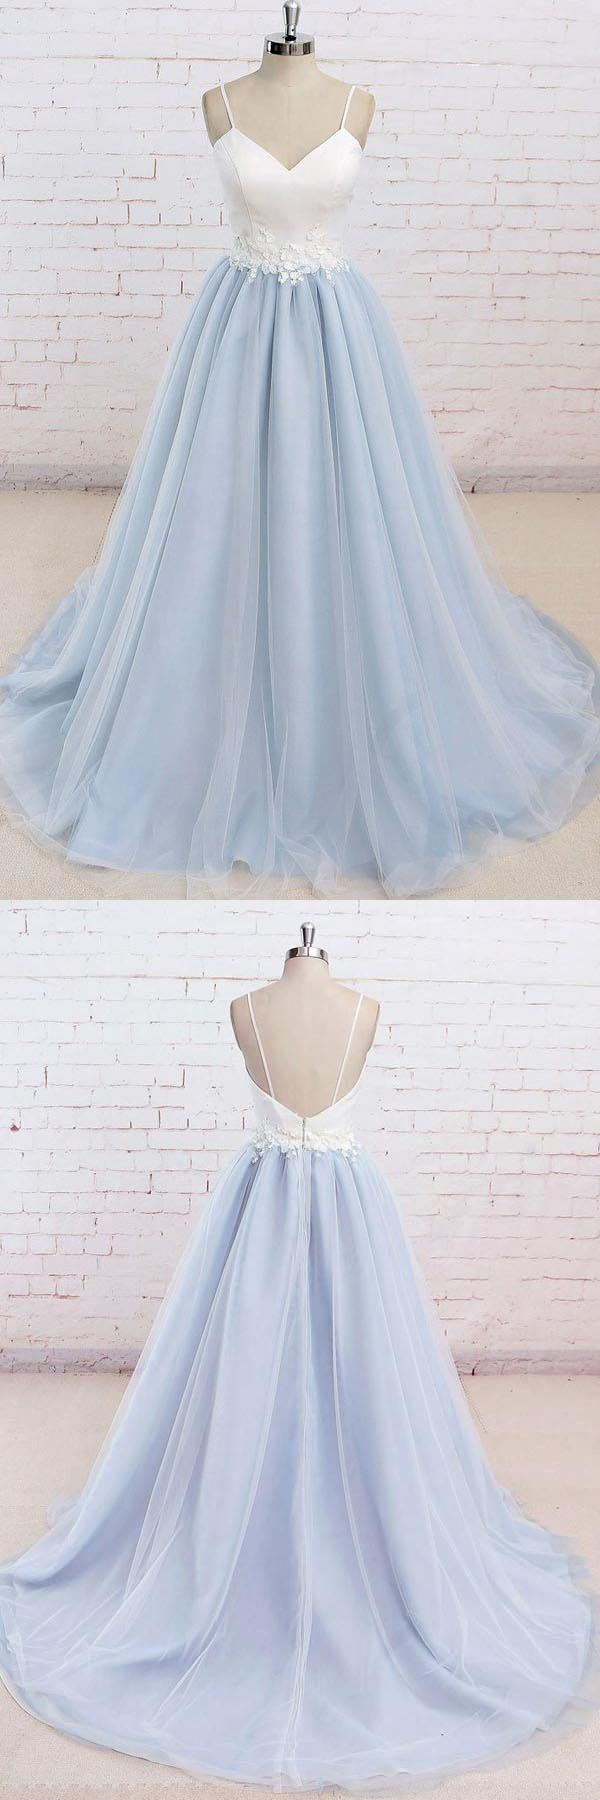 Spaghetti straps sweep train backless light blue tulle prom dress